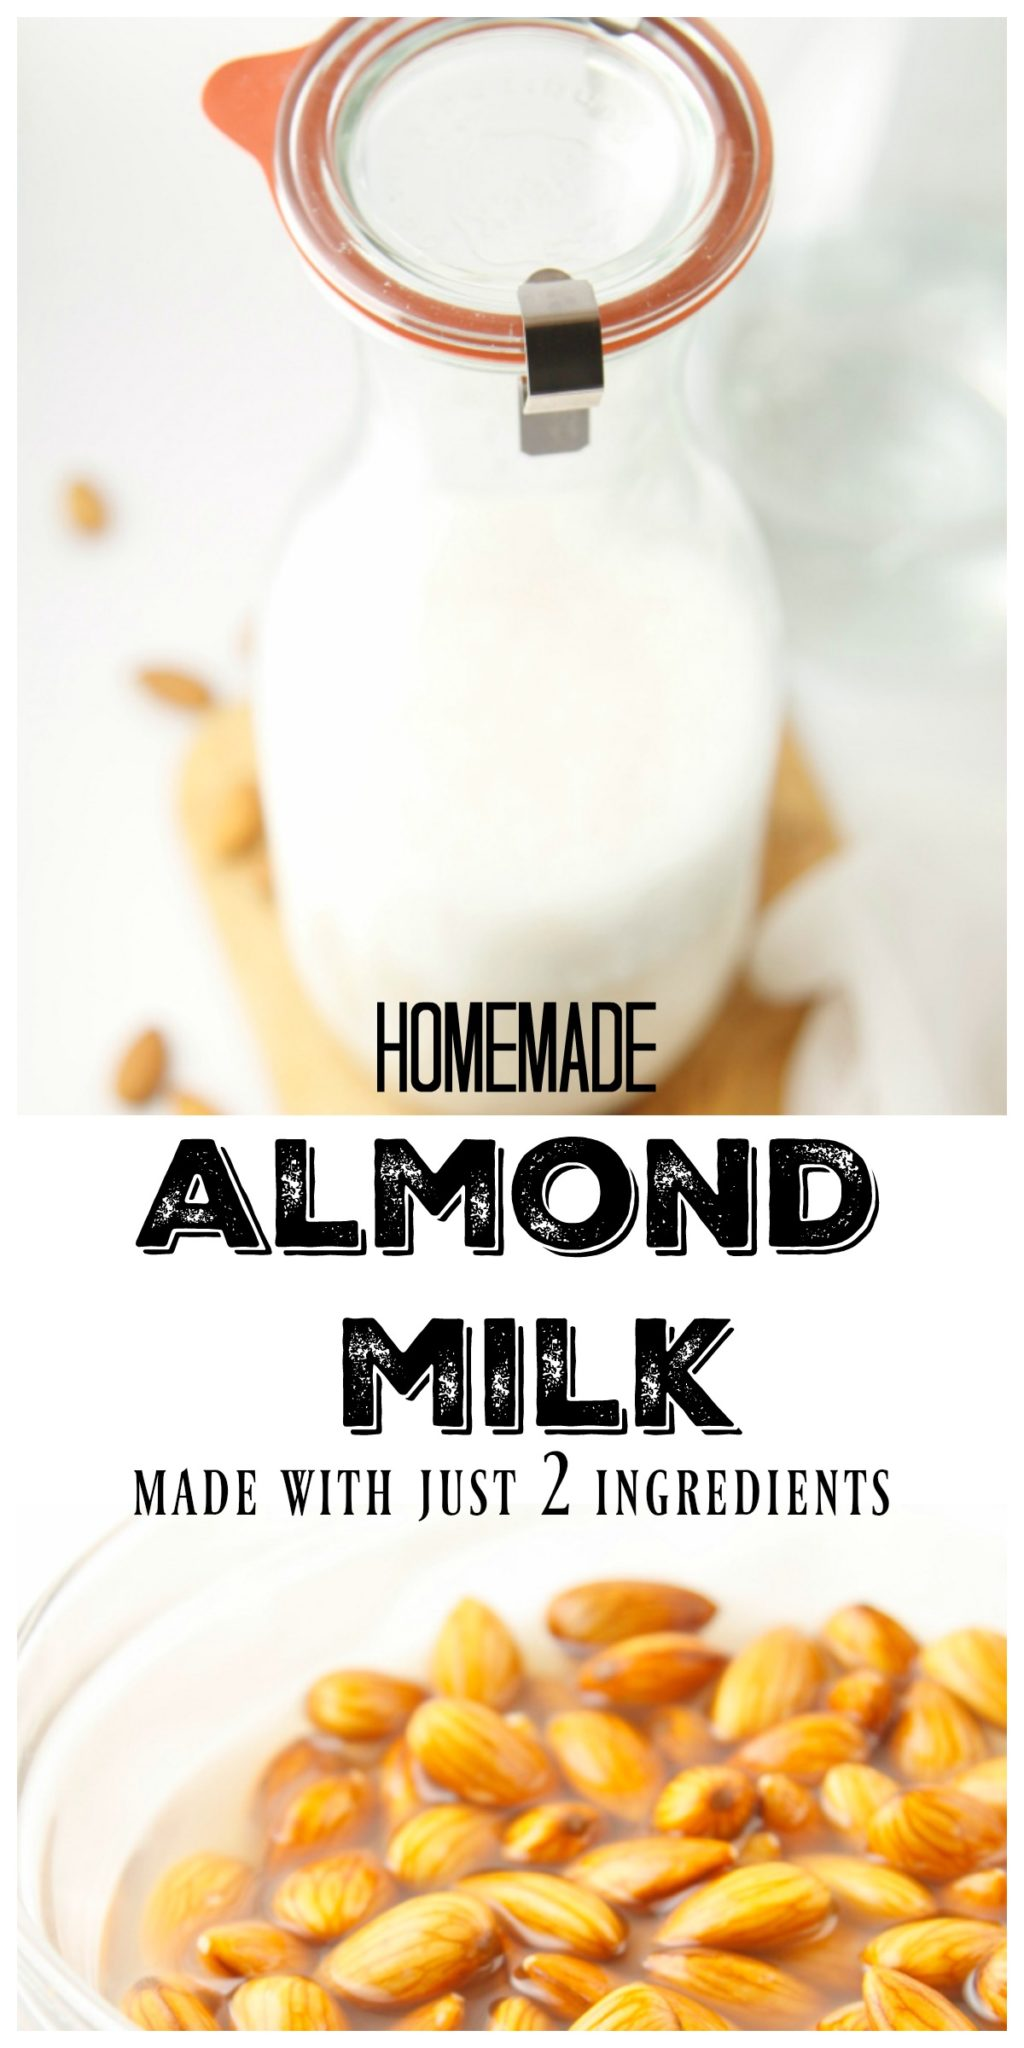 Learn how to make homemade almond milk with just 2 simple ingredients! #almondmilk #dairyfree #beverage #homemade #howto #diy